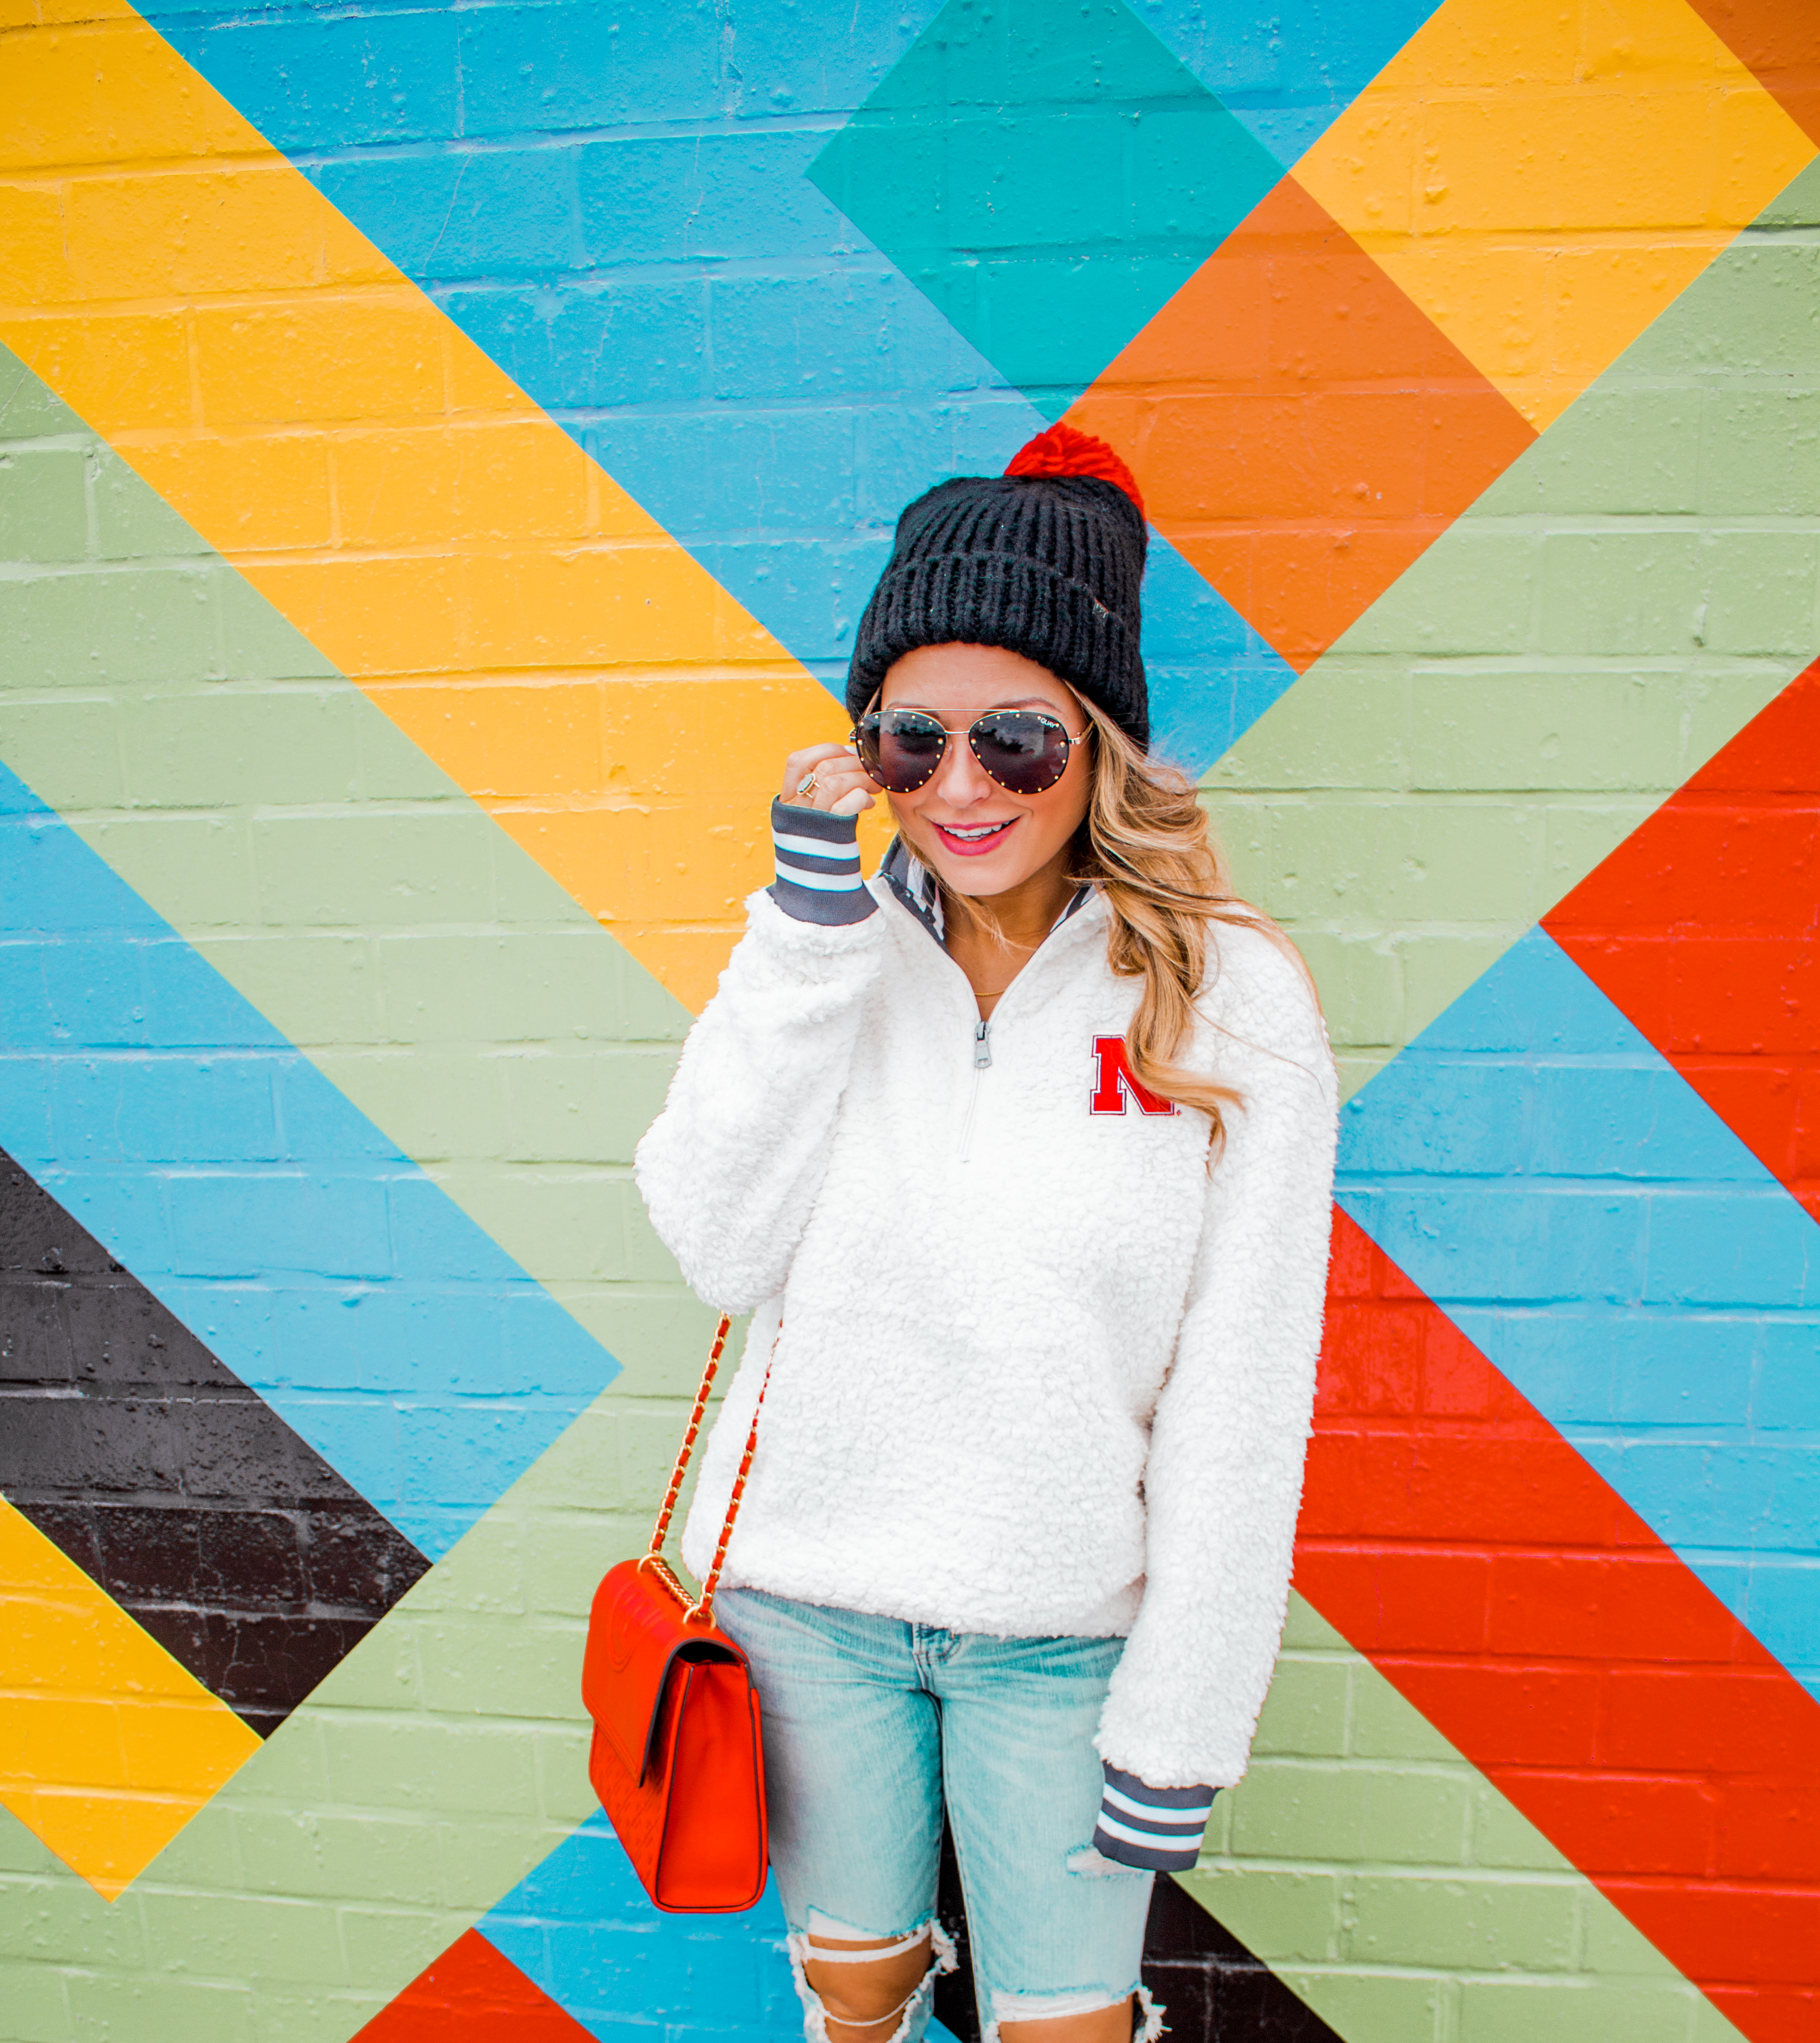 Nebraska - Women's Fashion - Sherpa - Husker - Pullover - Husker Gear - Omaha Blogger - Sabby Style - Casual Outfit - 16